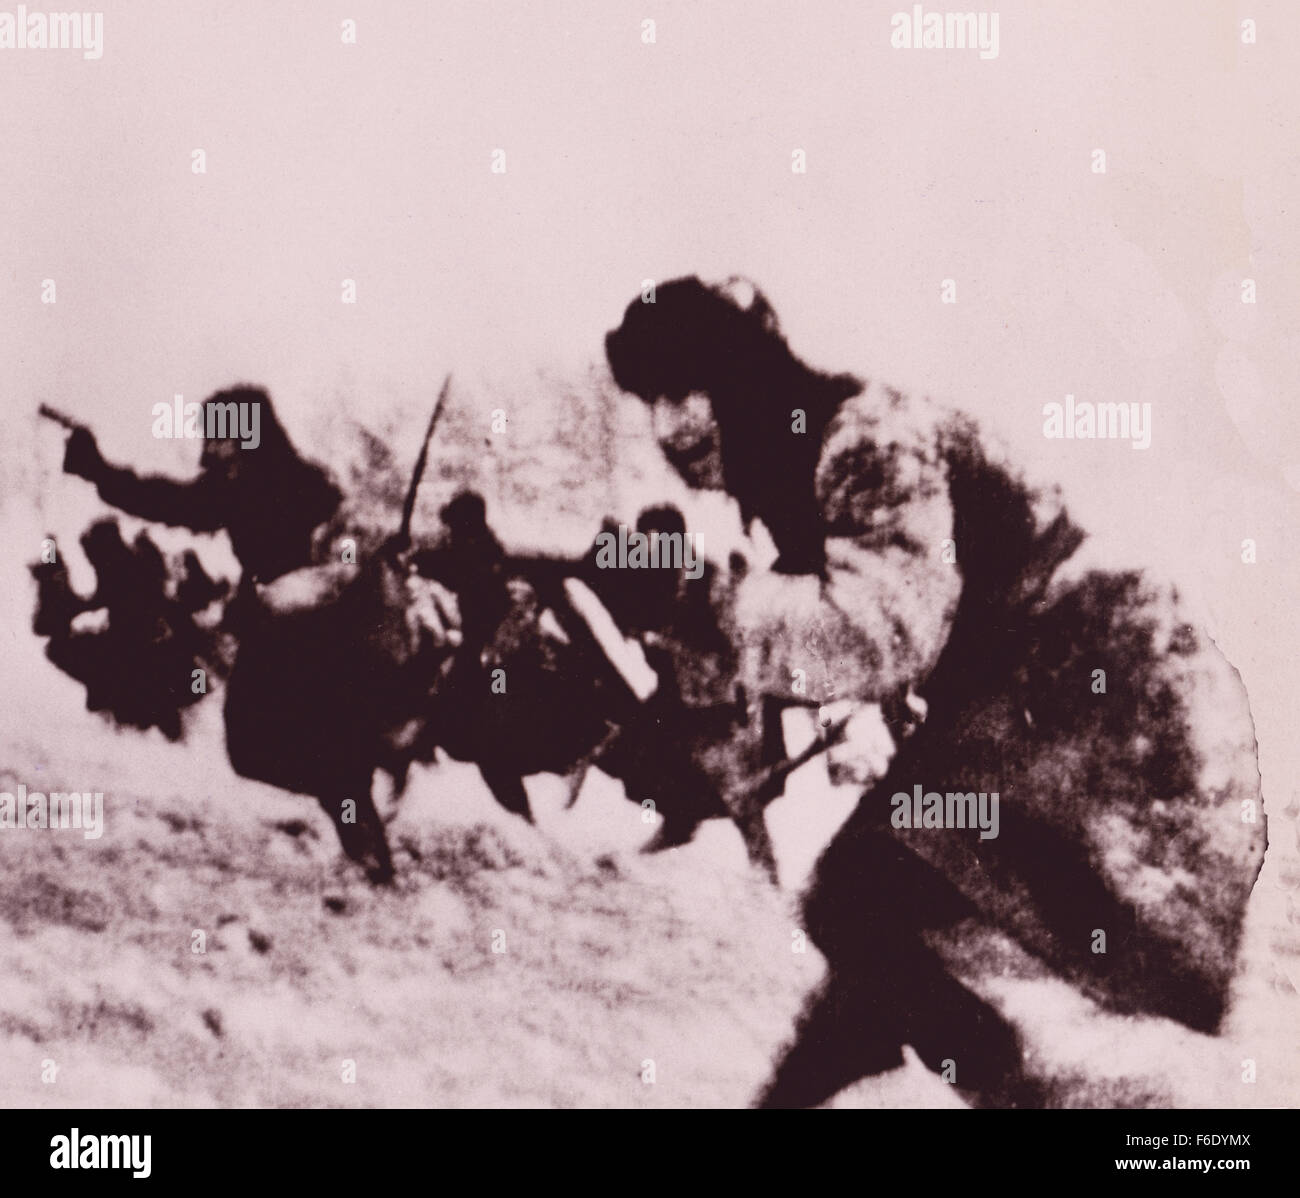 737. WW2 Red Army charge into battle at Stalingrad  1943 winter. Stock Photo